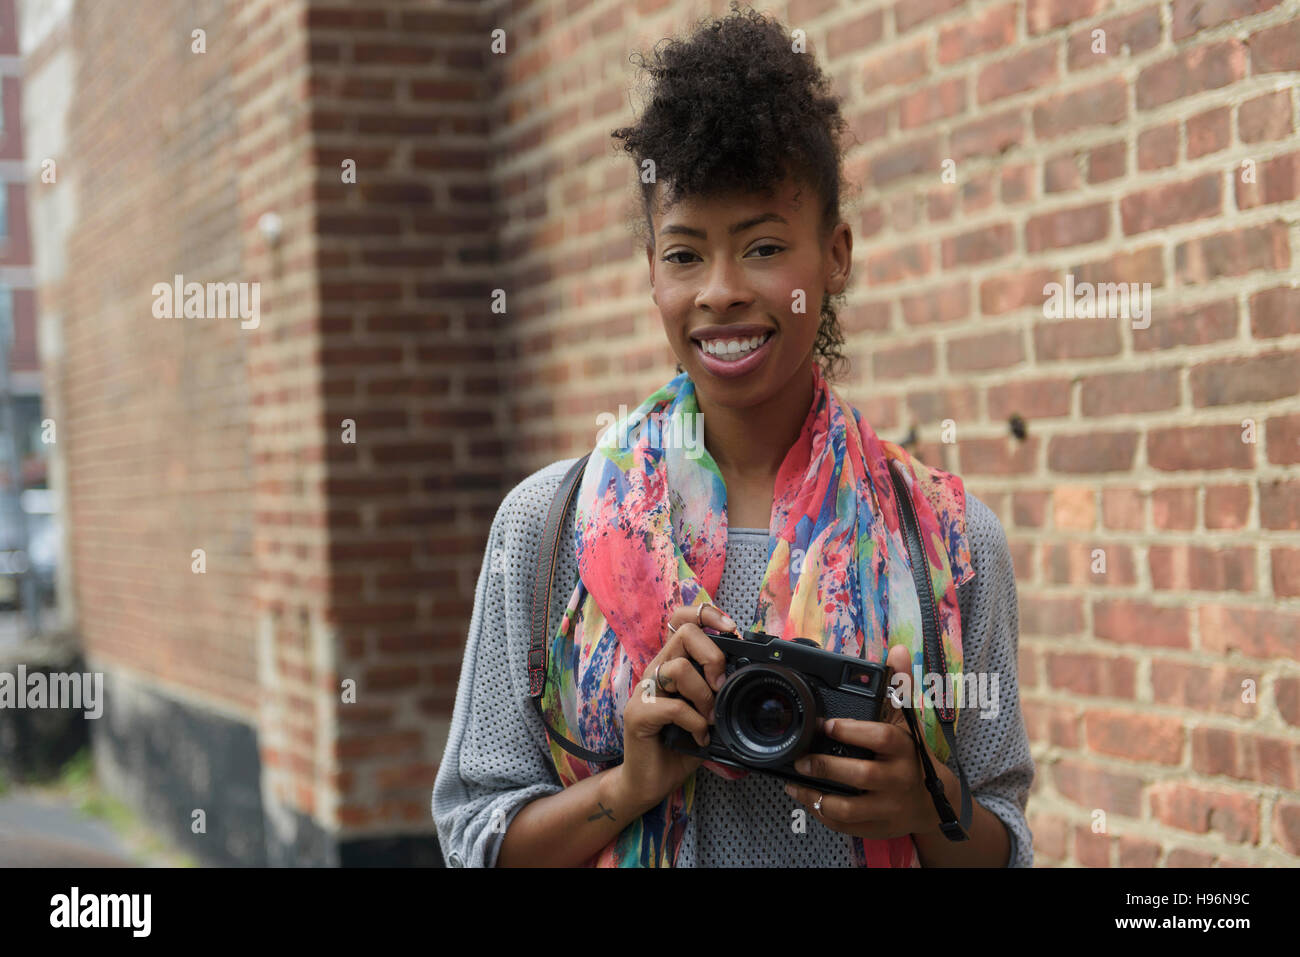 Young woman with digital camera against brick wall - Stock Image